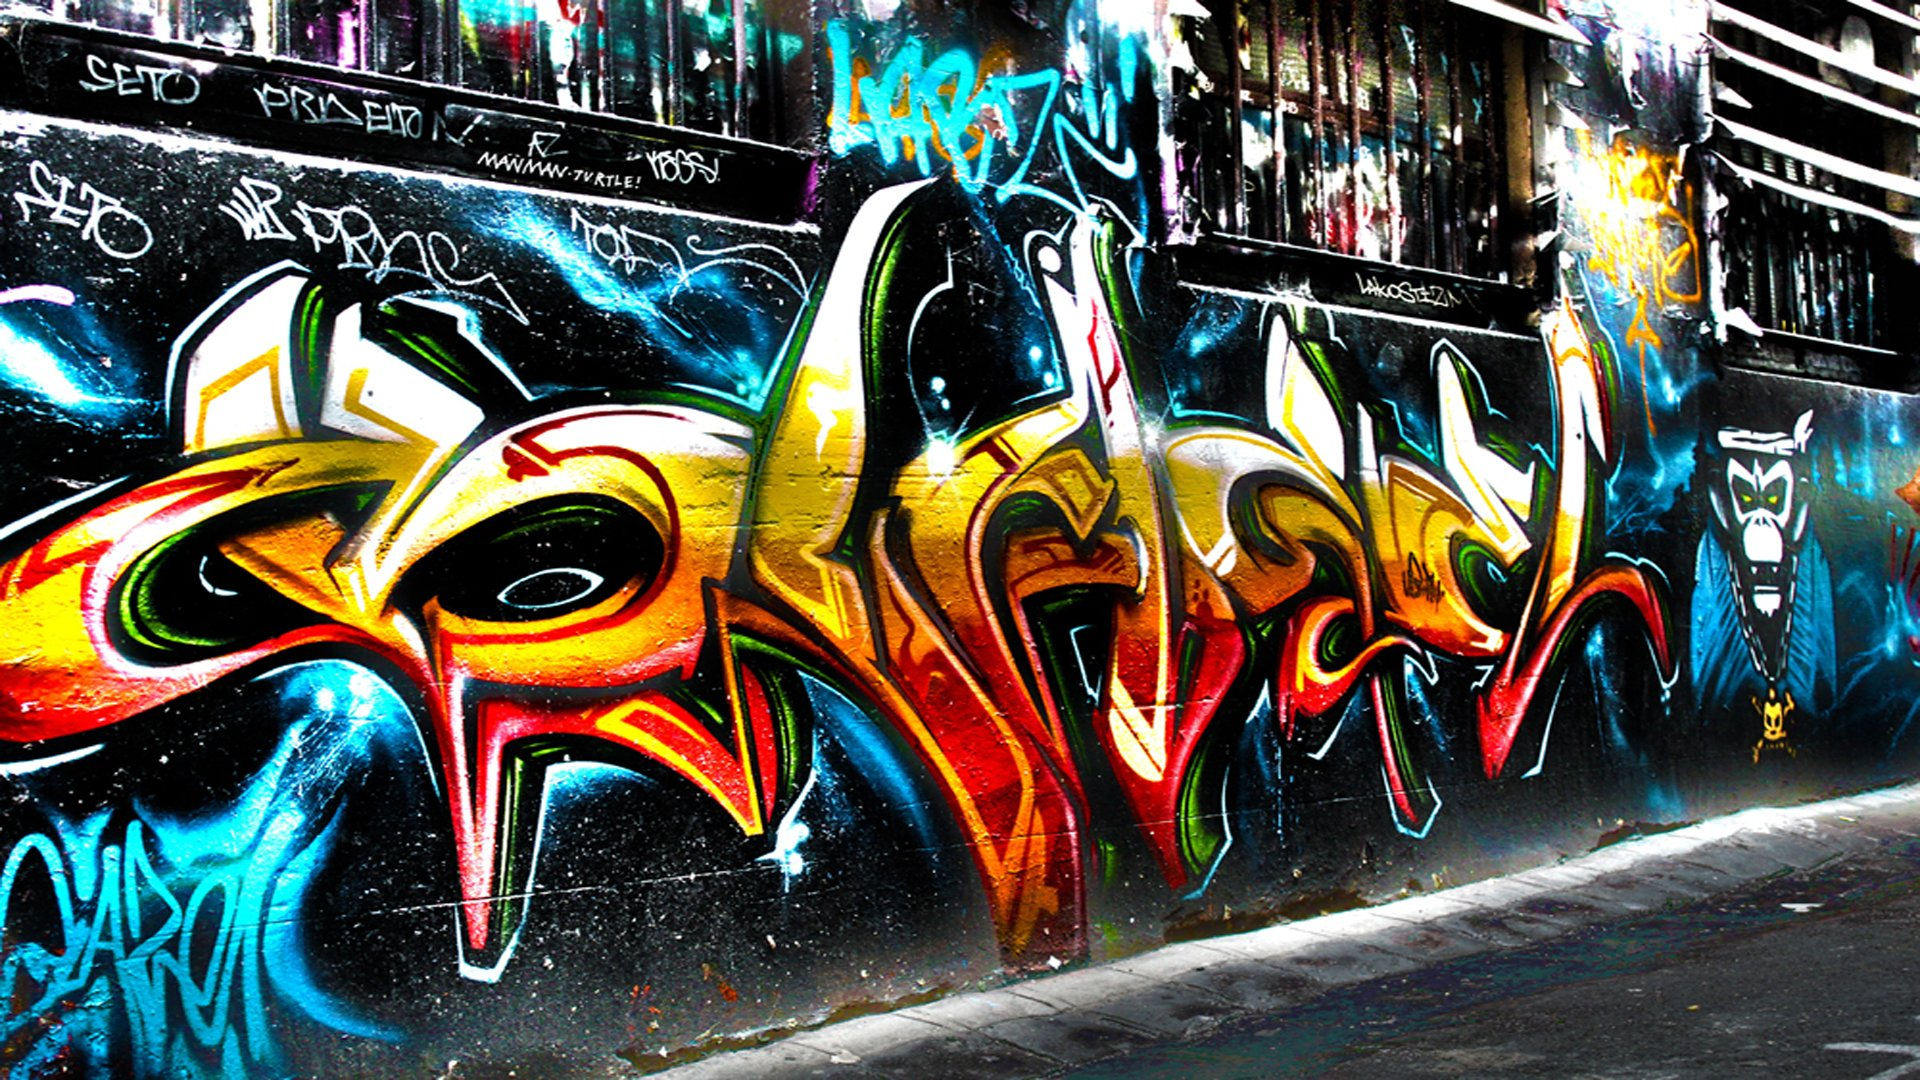 Artistic - Graffiti  Trippy Psychedelic Urban Urban Art Wallpaper